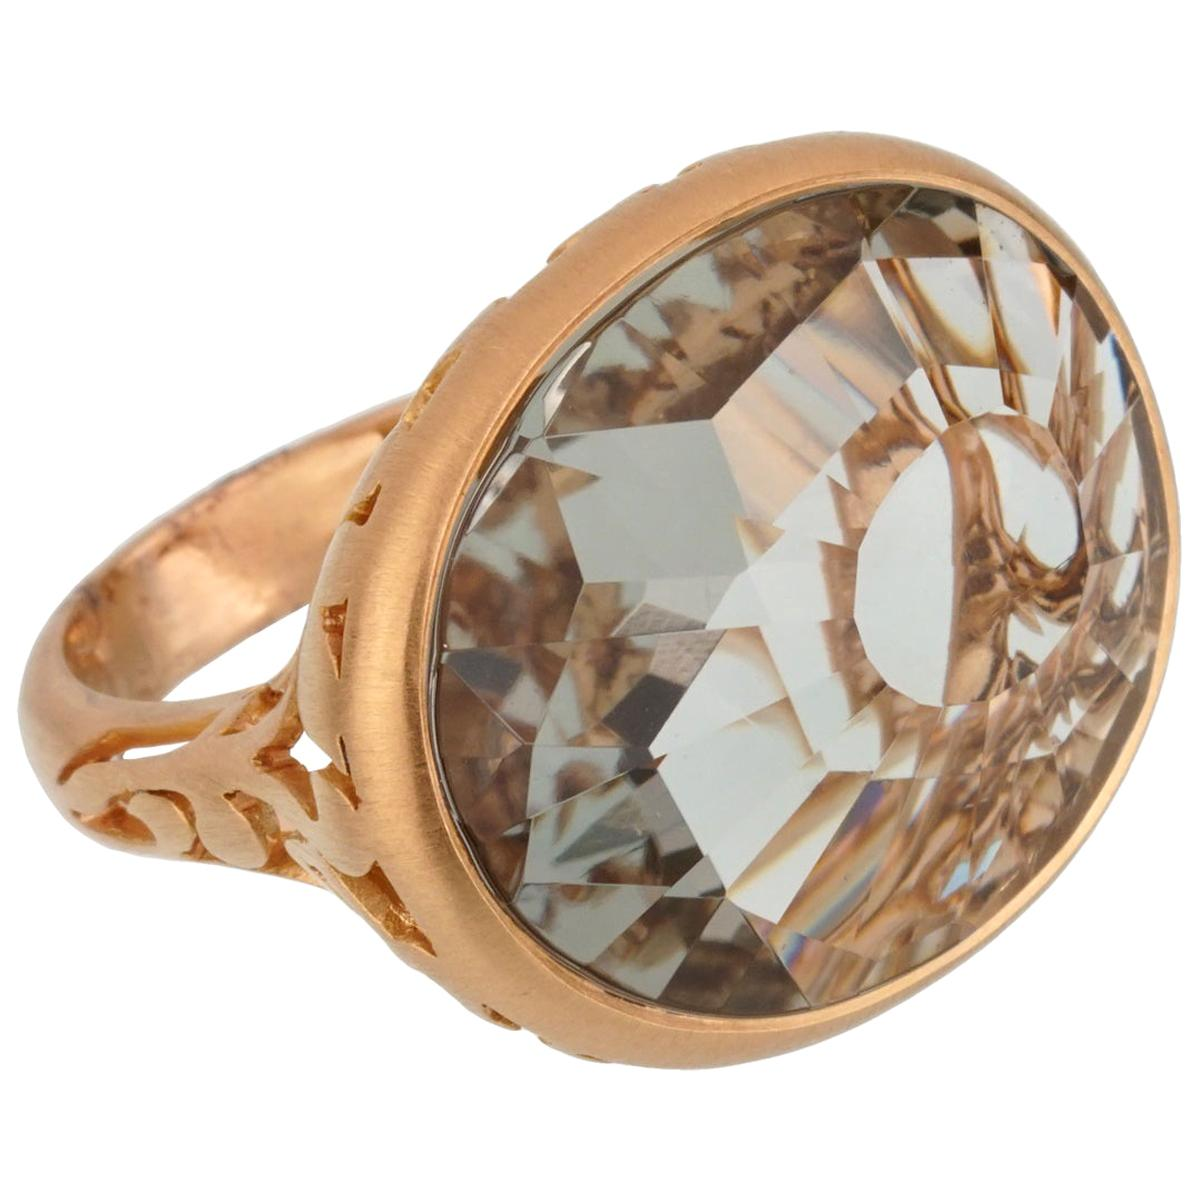 Pomellato 10 Carat Prasiolite Cocktail Rose Gold Ring